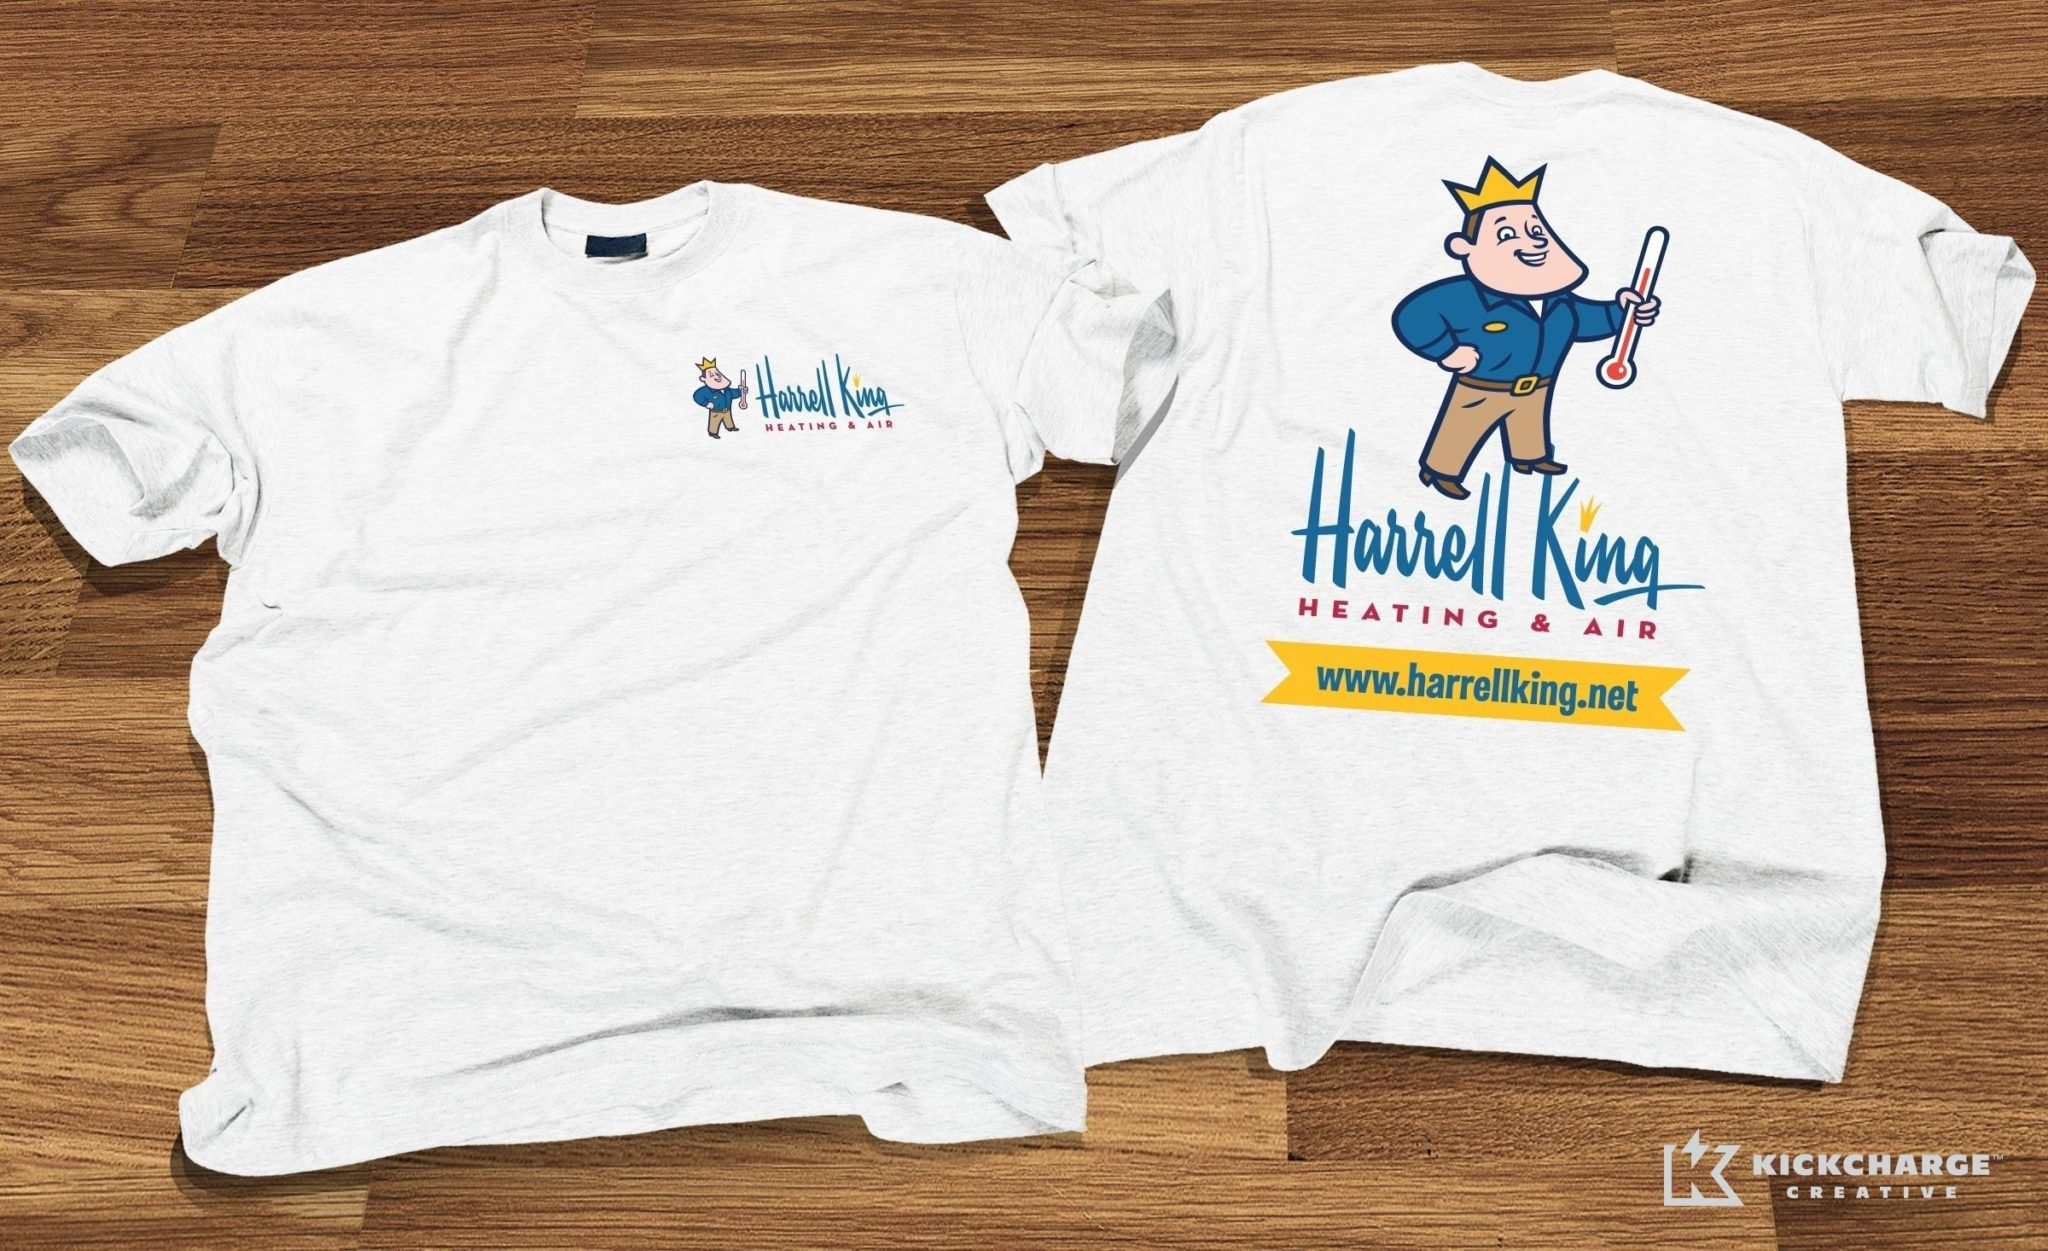 T-Shirt design for Harrell King Heating & Air.